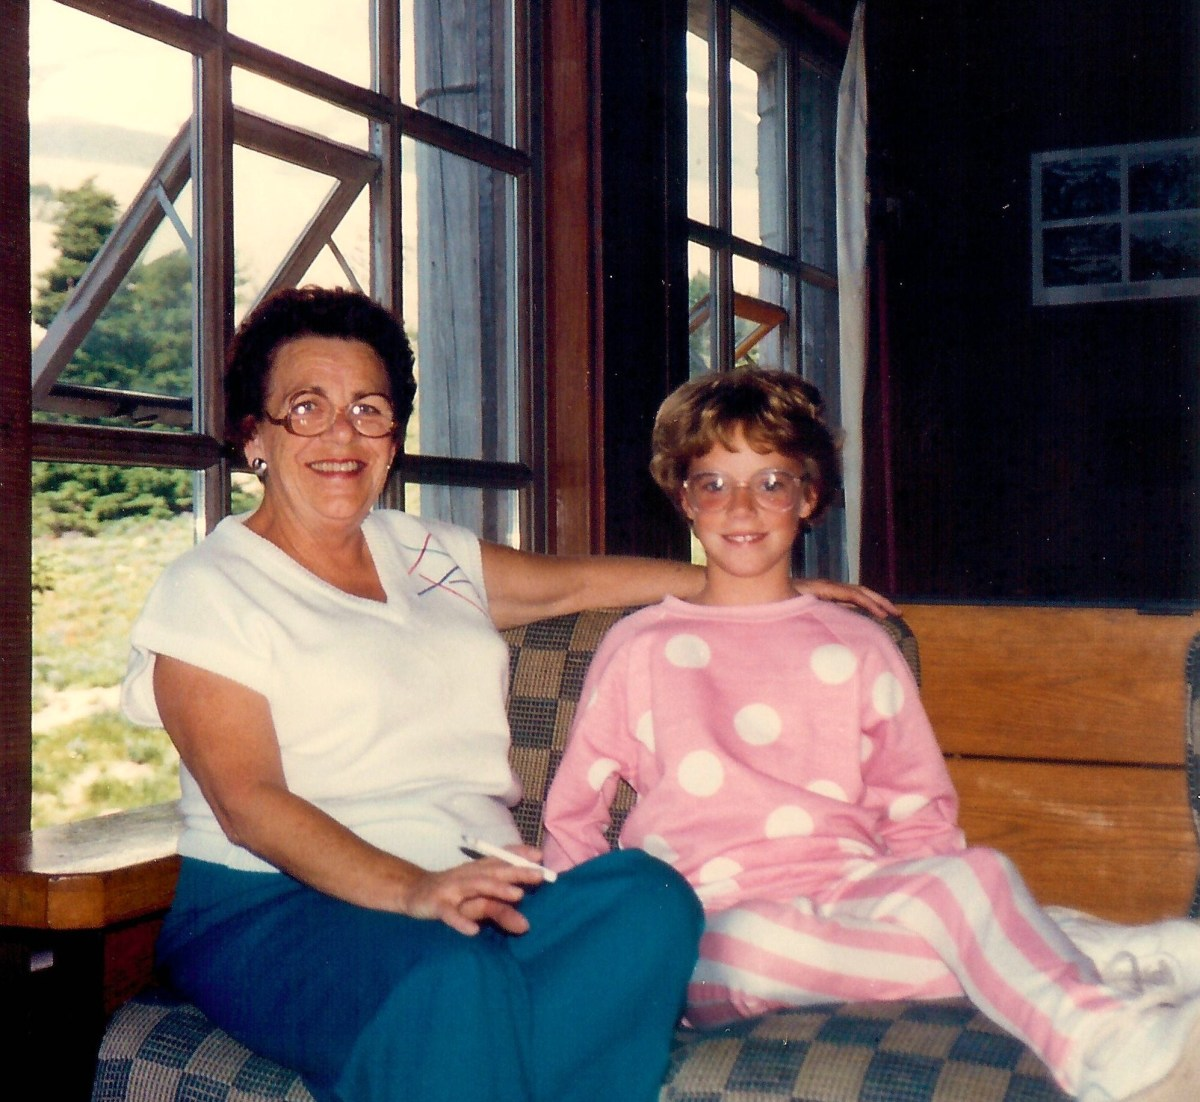 My mother and niece at Timberline Lodge